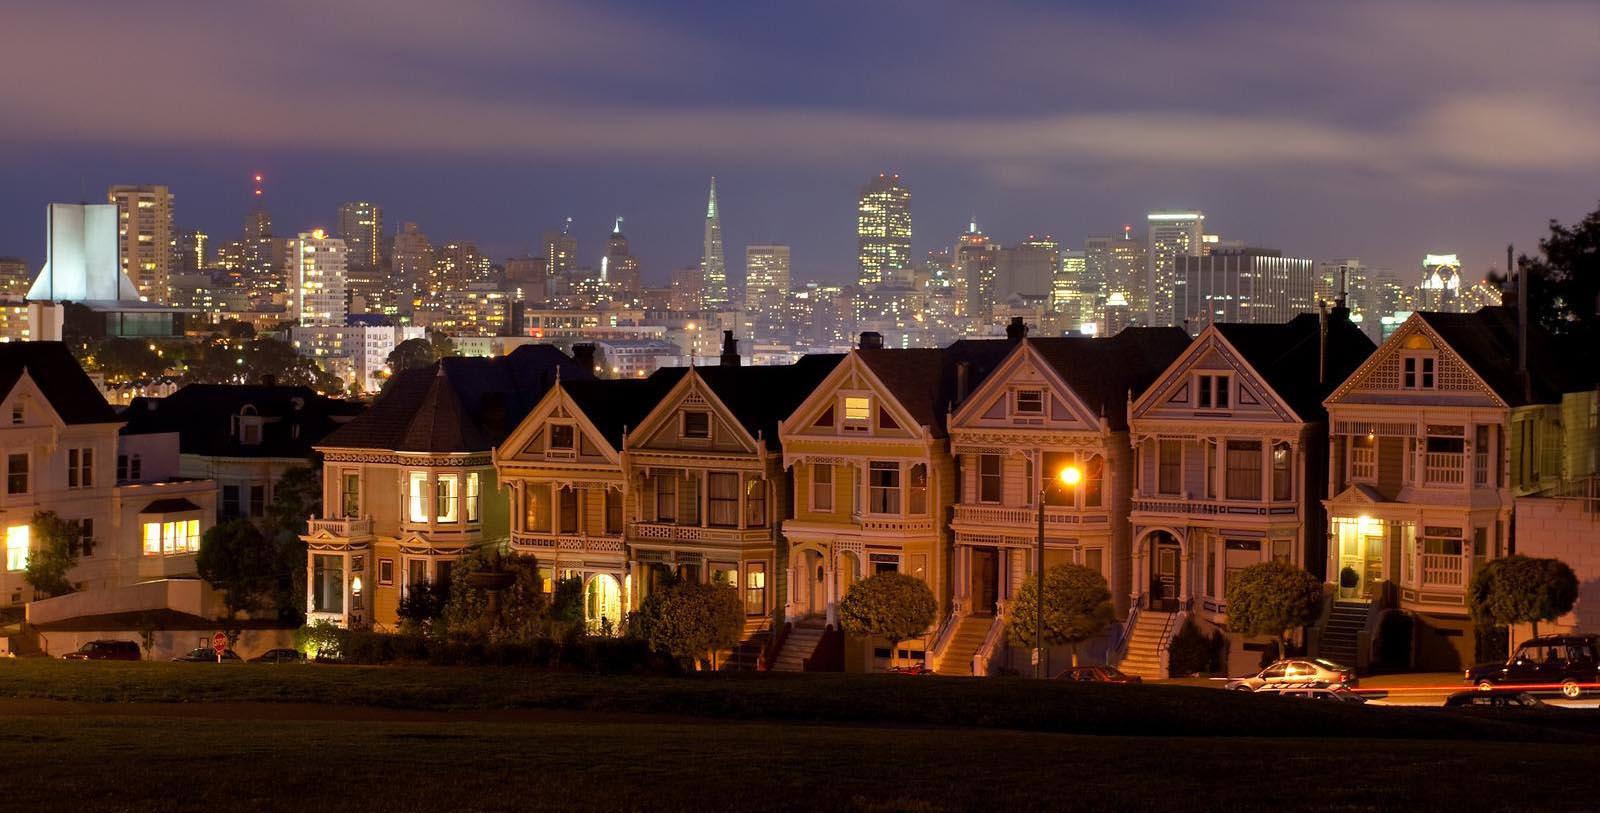 Image of Painted Ladies at Night, InterContinental Mark Hopkins Hotel in San Francisco, California, 1926, Member of Historic Hotels of America, Explore